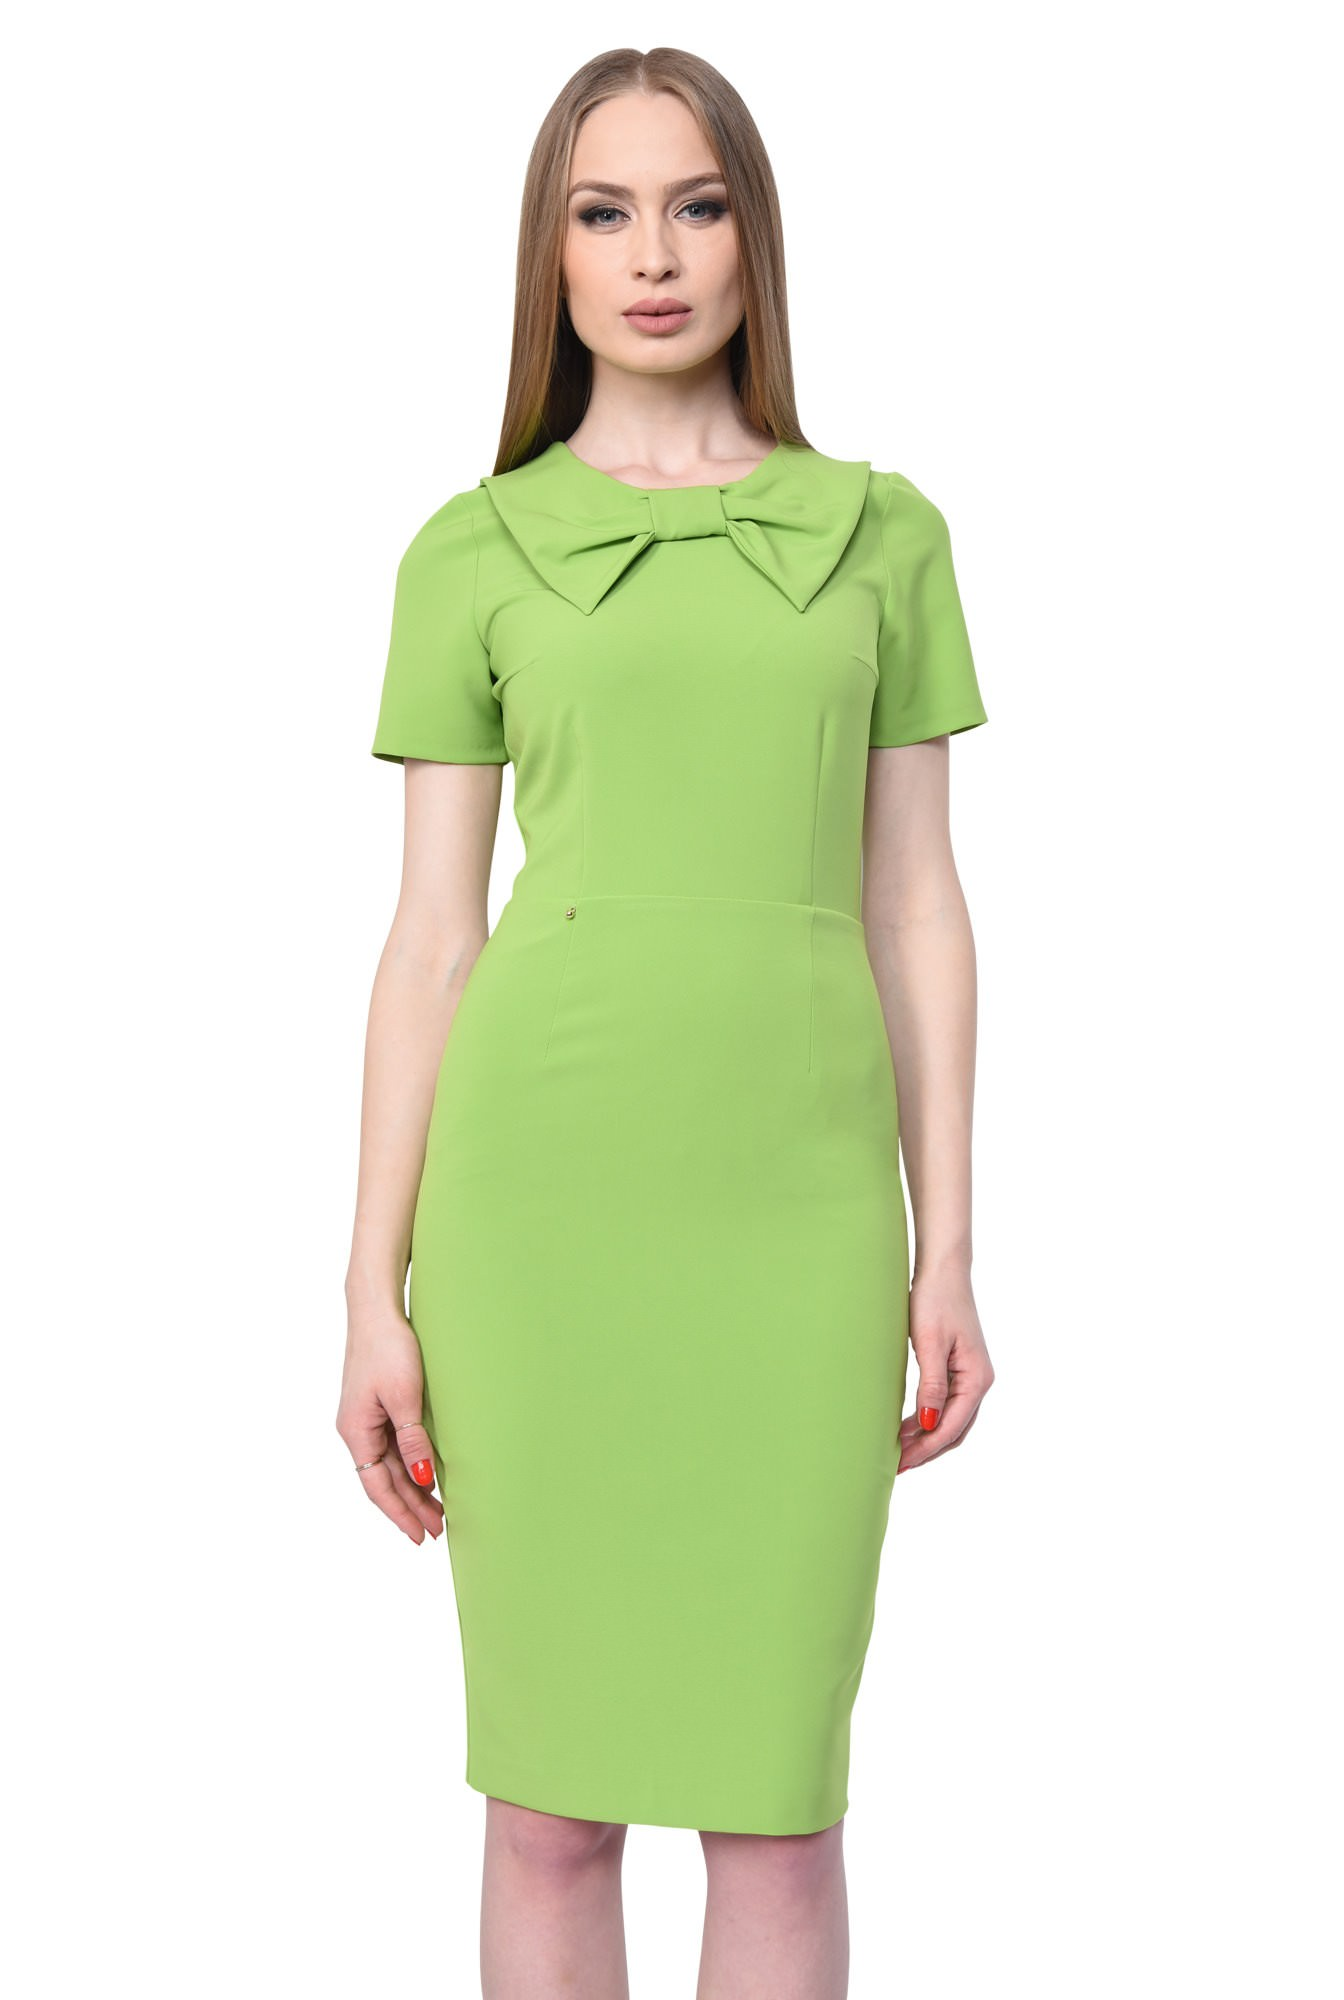 1 - ROCHIE OFFICE CONICA R 265-VERDE